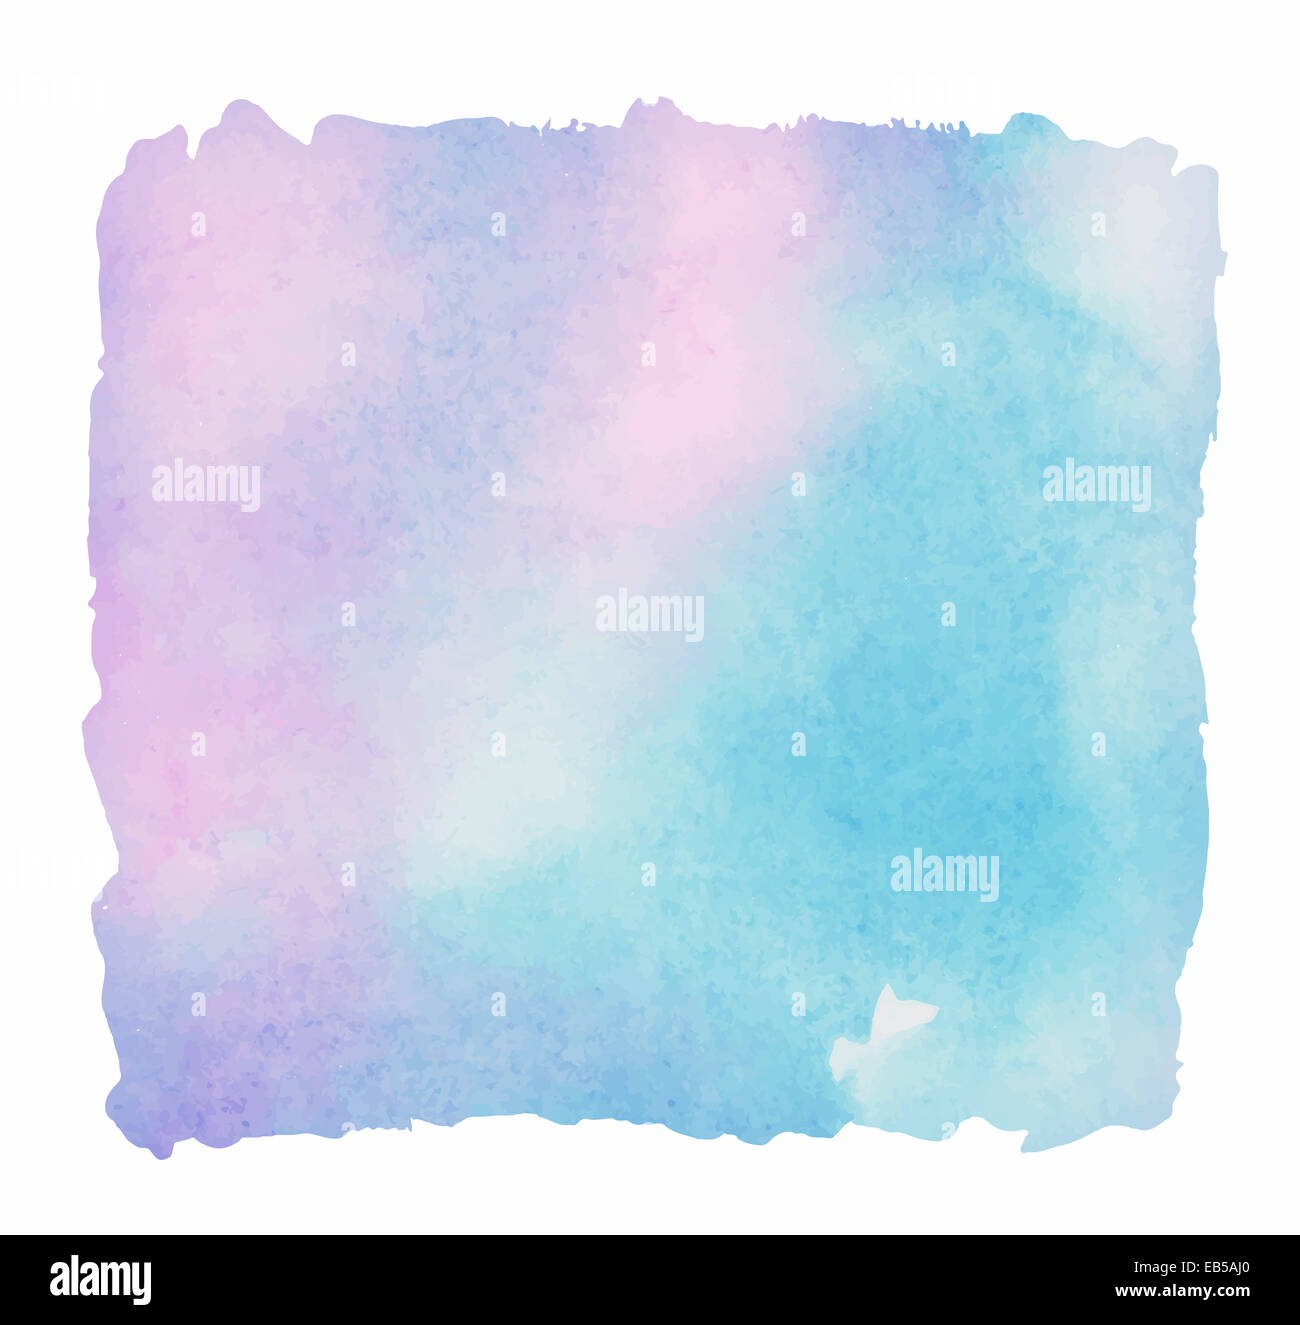 Light colorful watercolor background. Painted rectangle - Stock Image